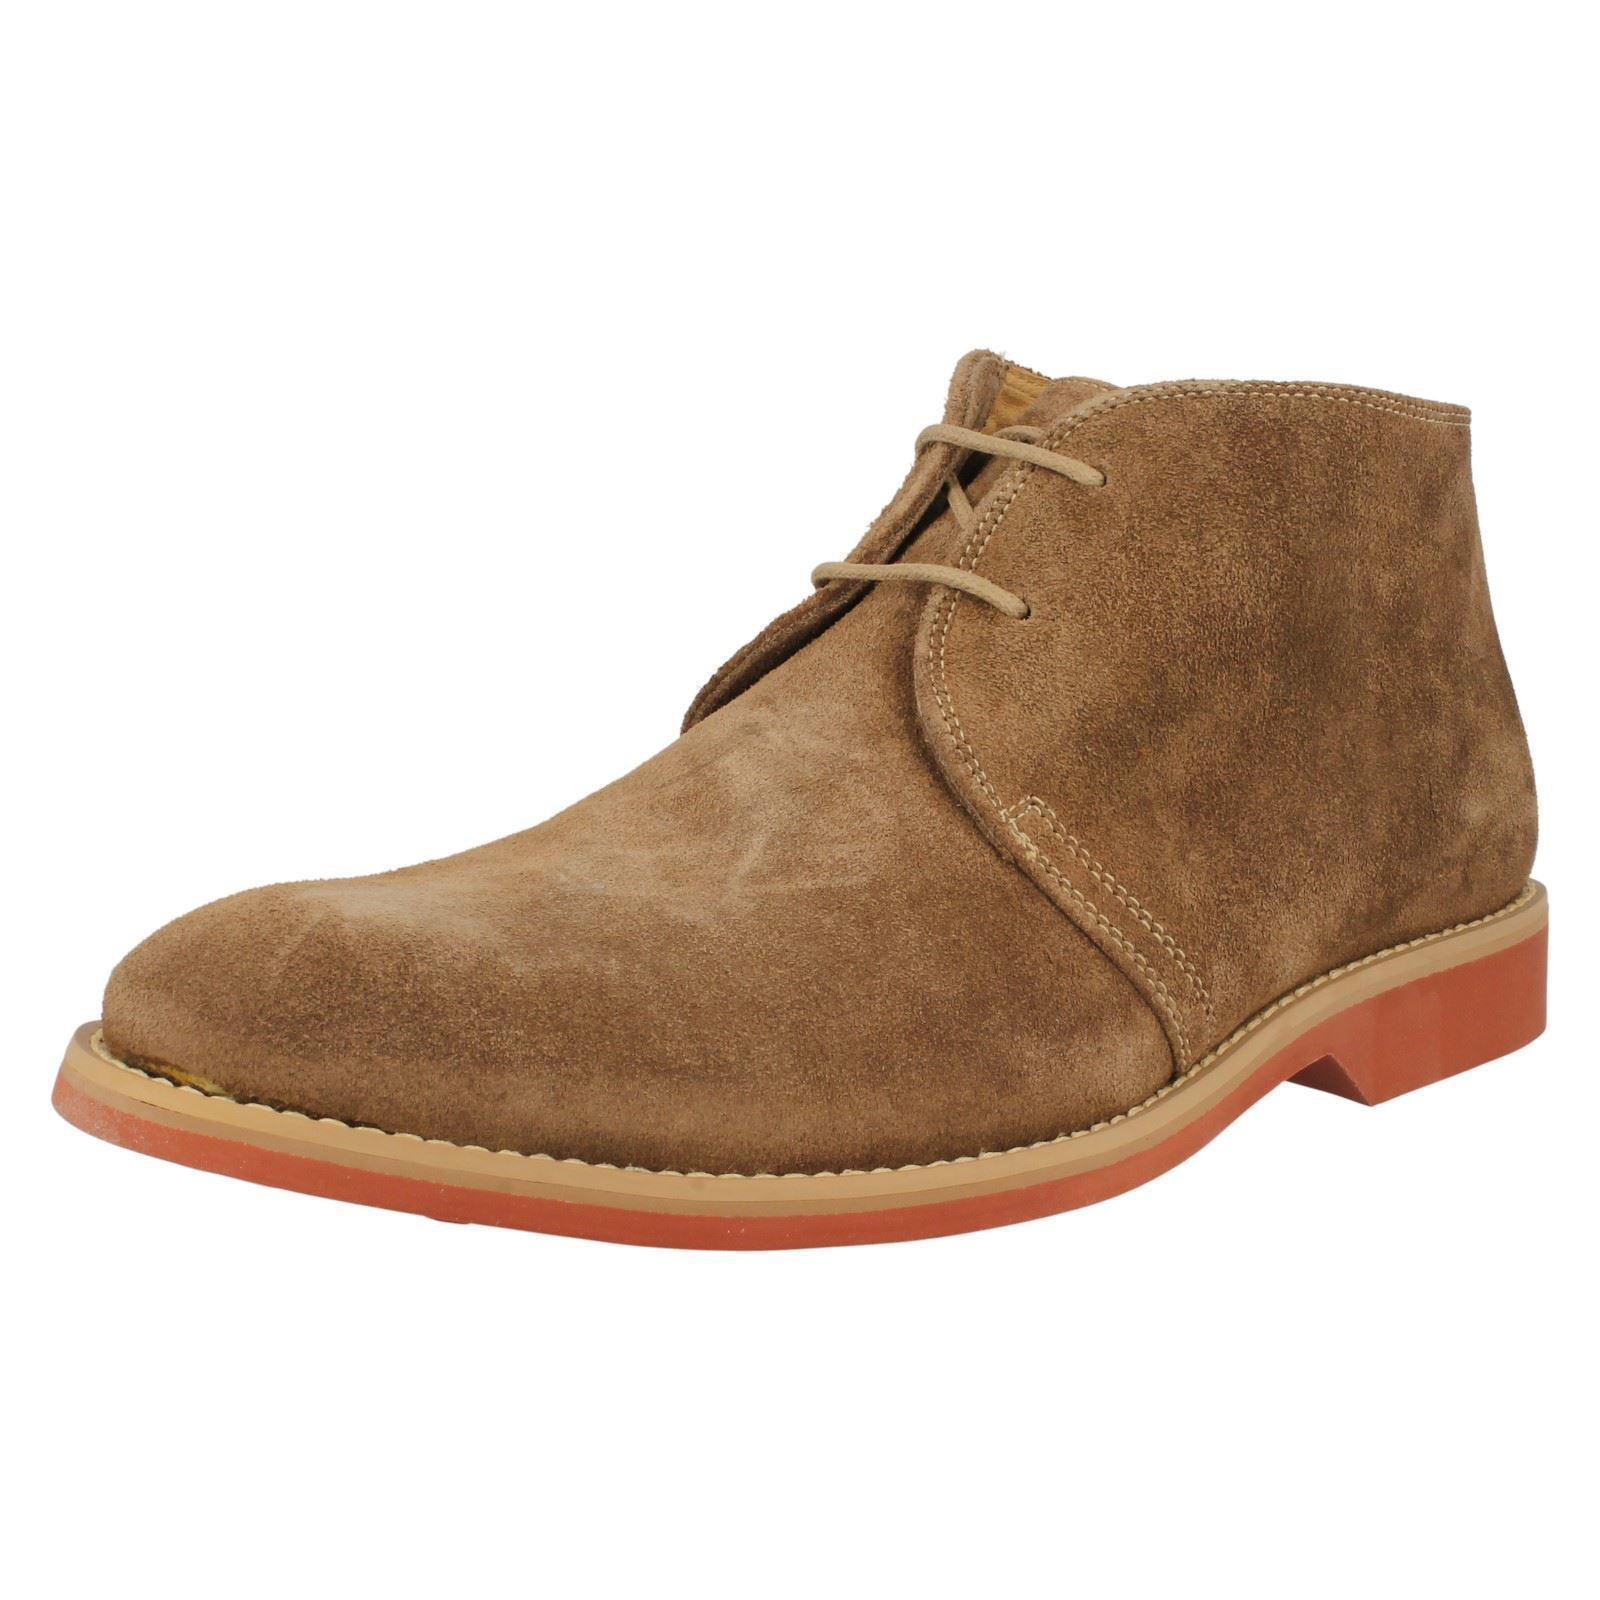 Anatomic & Co 525203 Colorado Ocre Suede Mens Ankle Boot Sizes 8, 10 & 11 (R40A)